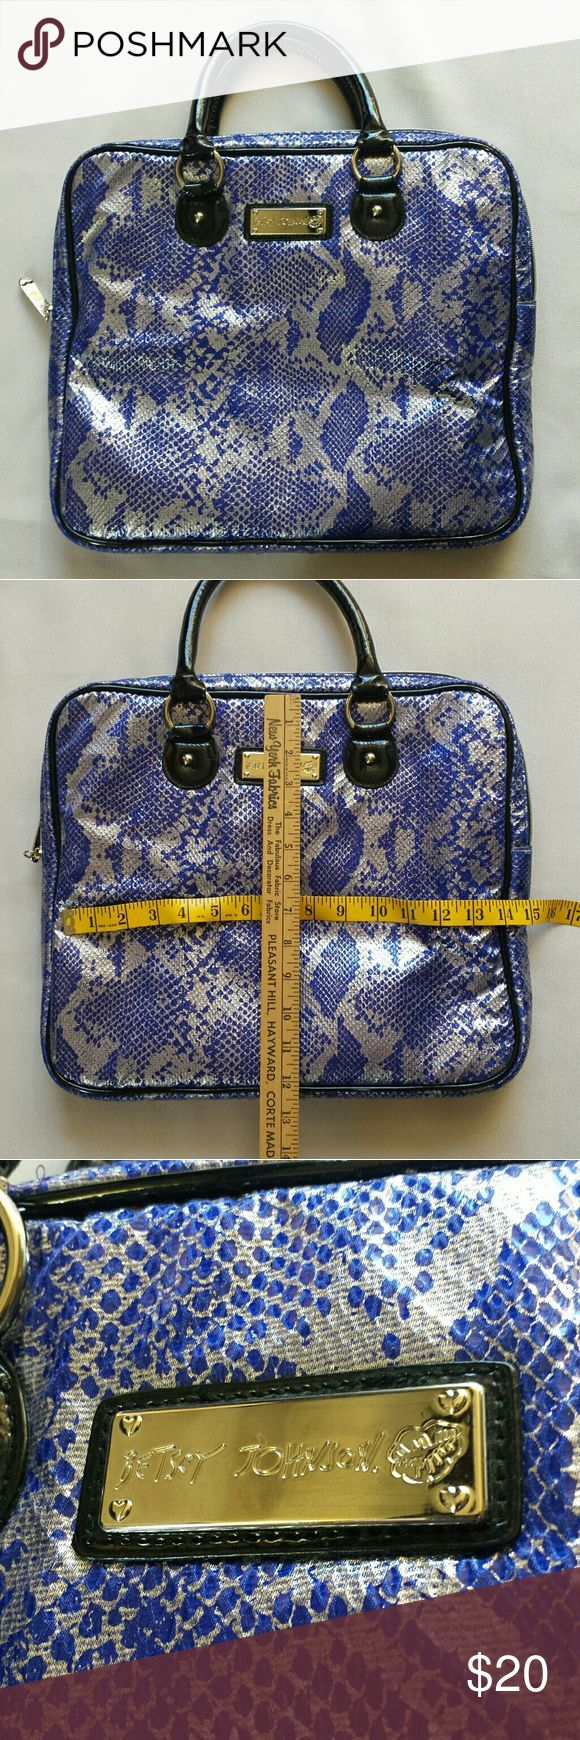 Betsey Johnson laptop tote bag Betsey Johnson laptop tote bag. Metallic blue and white snakeskin look. Approximately 12 x 14 x 1.5. Inner pockets on both sides. Great pre-owned condition. Betsey Johnson Bags Laptop Bags